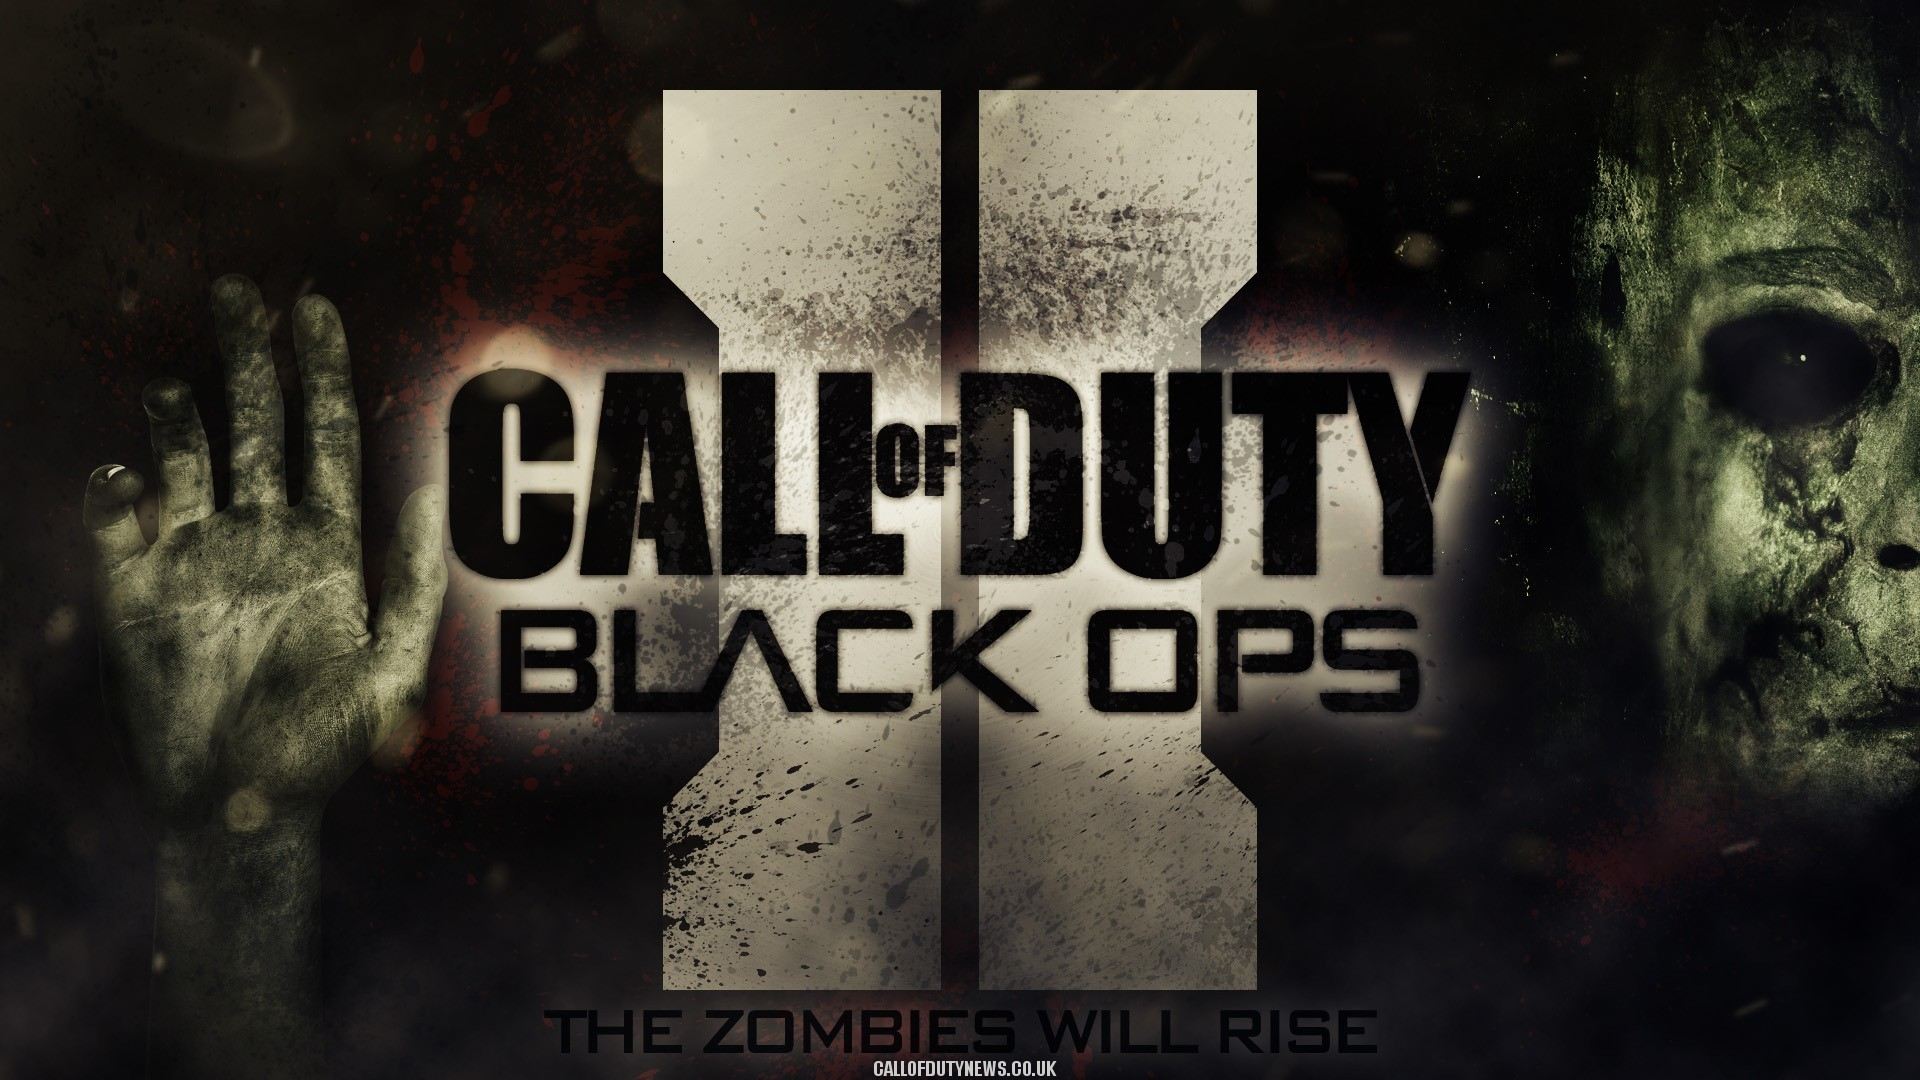 1920x1080 Call of duty Black Ops 2 Wallpaper by TheSyanArt